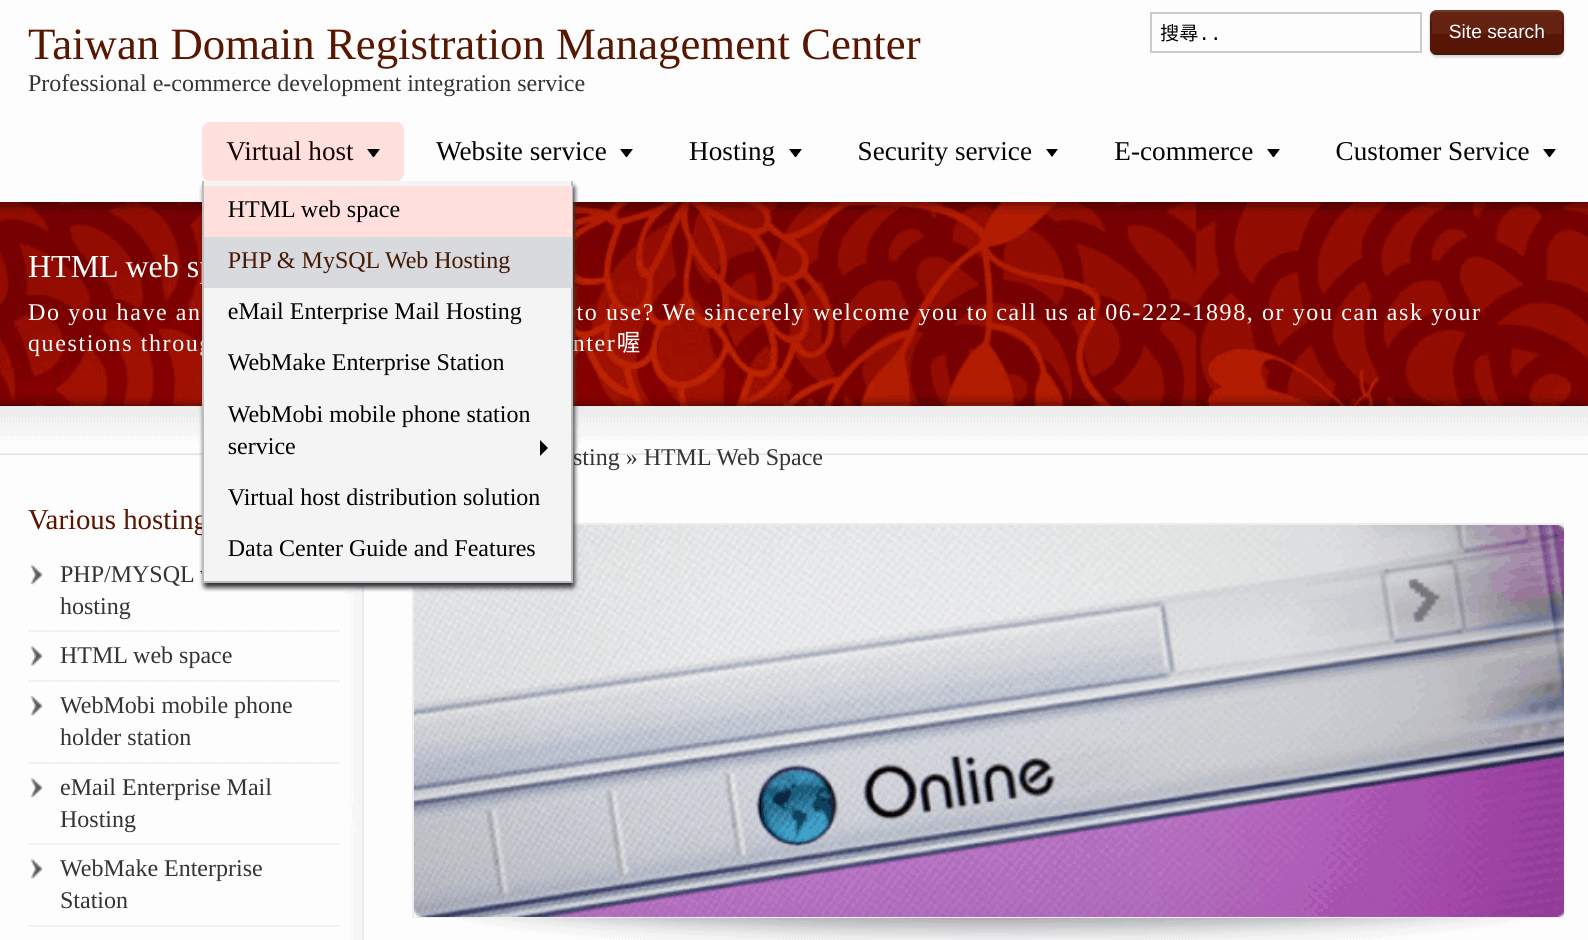 Taiwan Domain Management Center